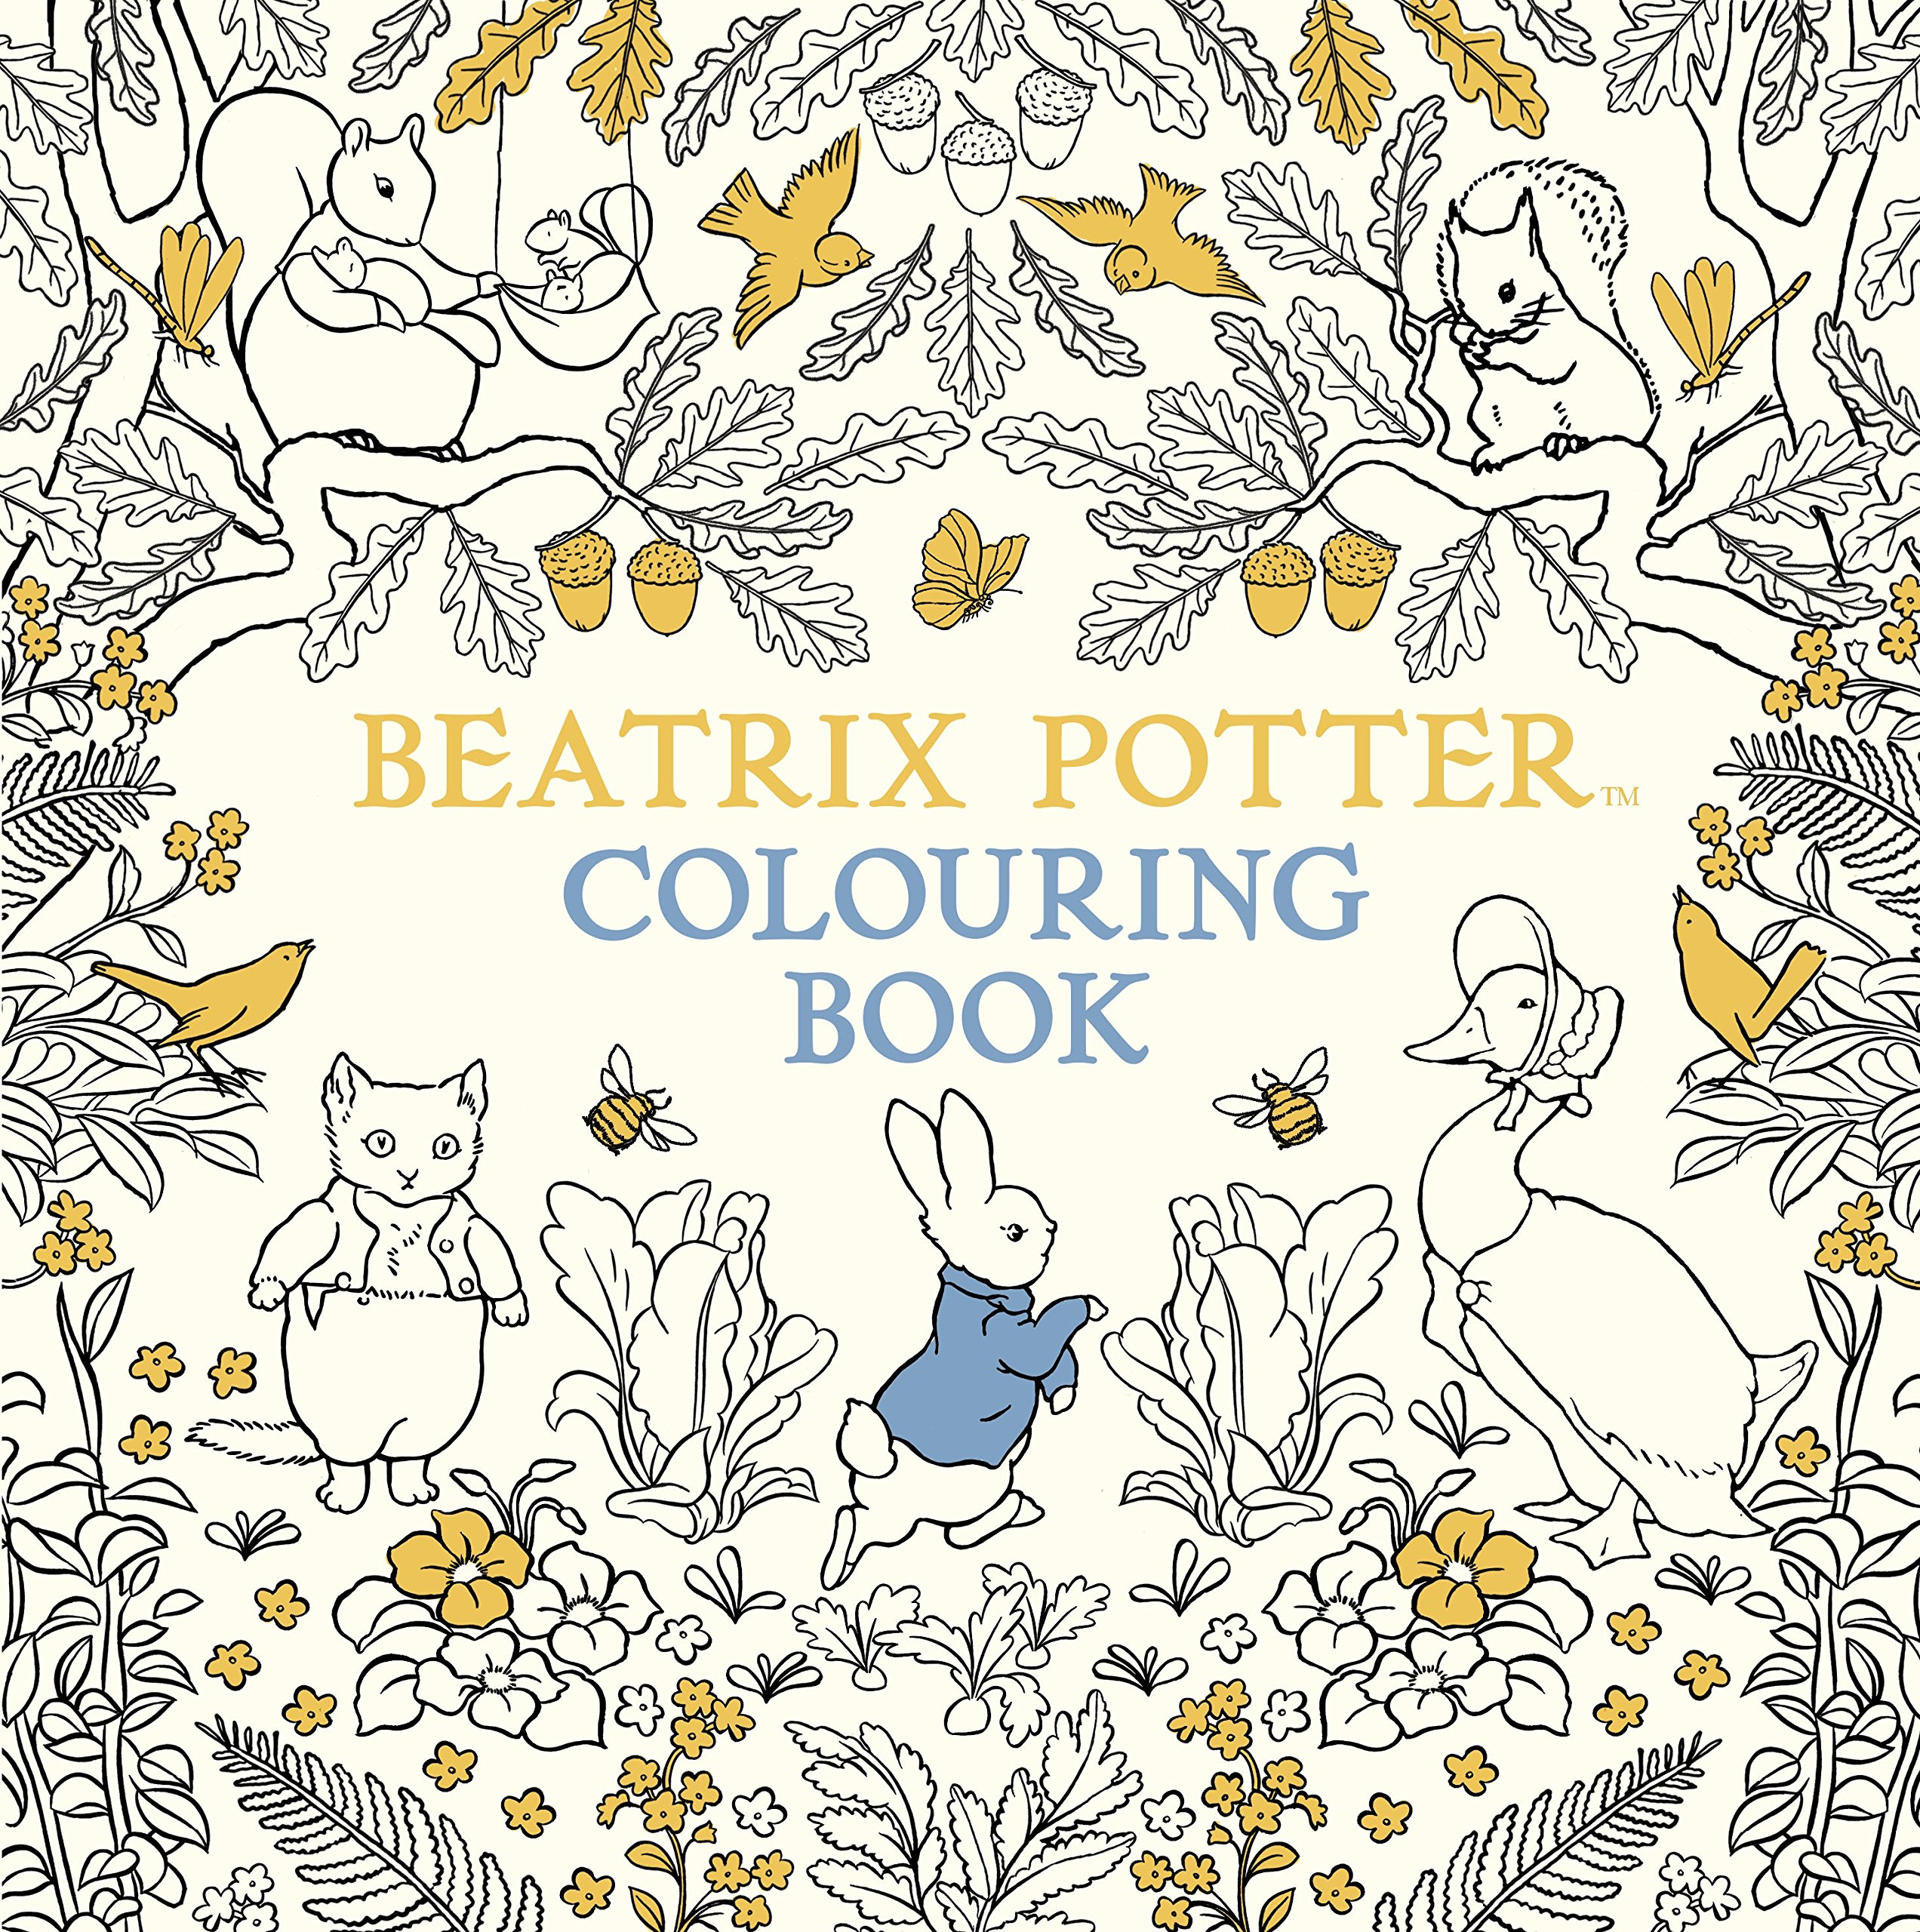 The Beatrix Potter Colouring Book Amazoncouk 9780241287545 Books